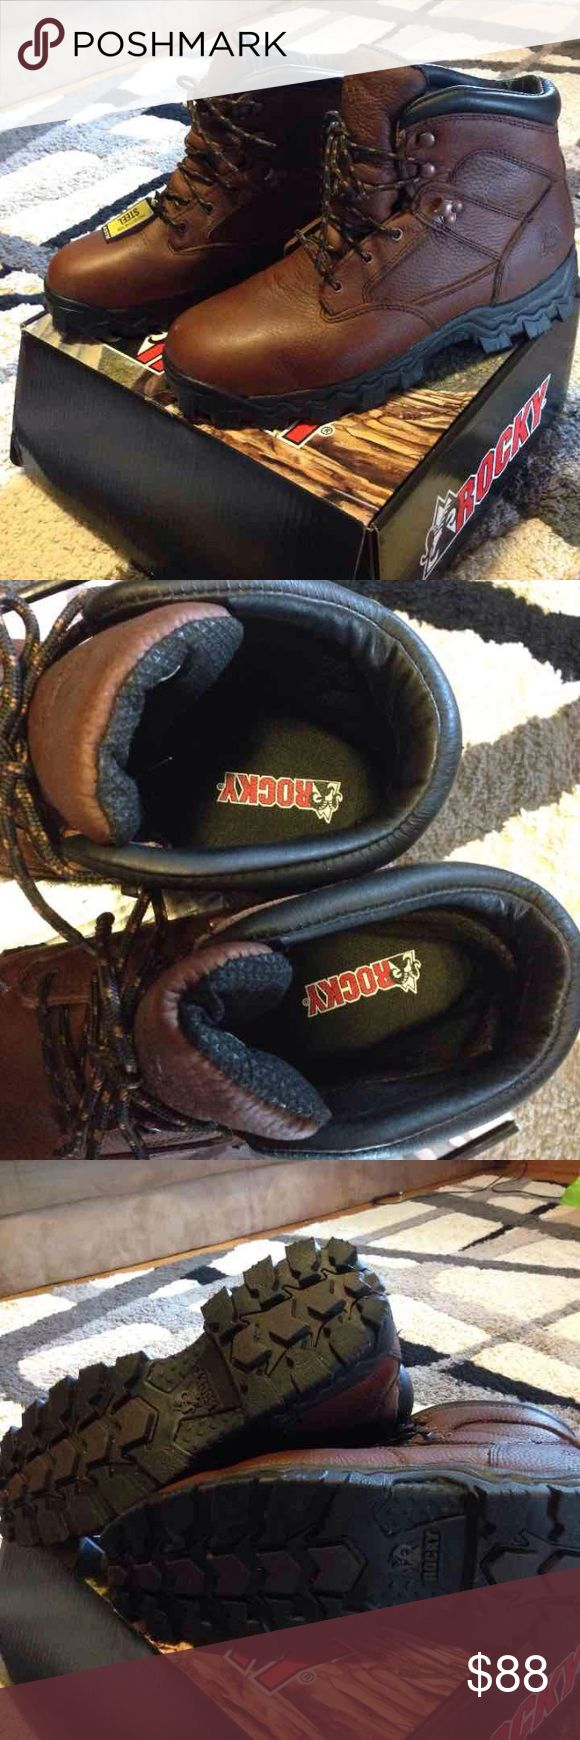 Rocky Steel Toe Boots Size 12W  New with the original box My husband wore it once for 3 hours, was too small for him. Has one scratch, that's why I sell this cheap. Rocky Shoes Boots